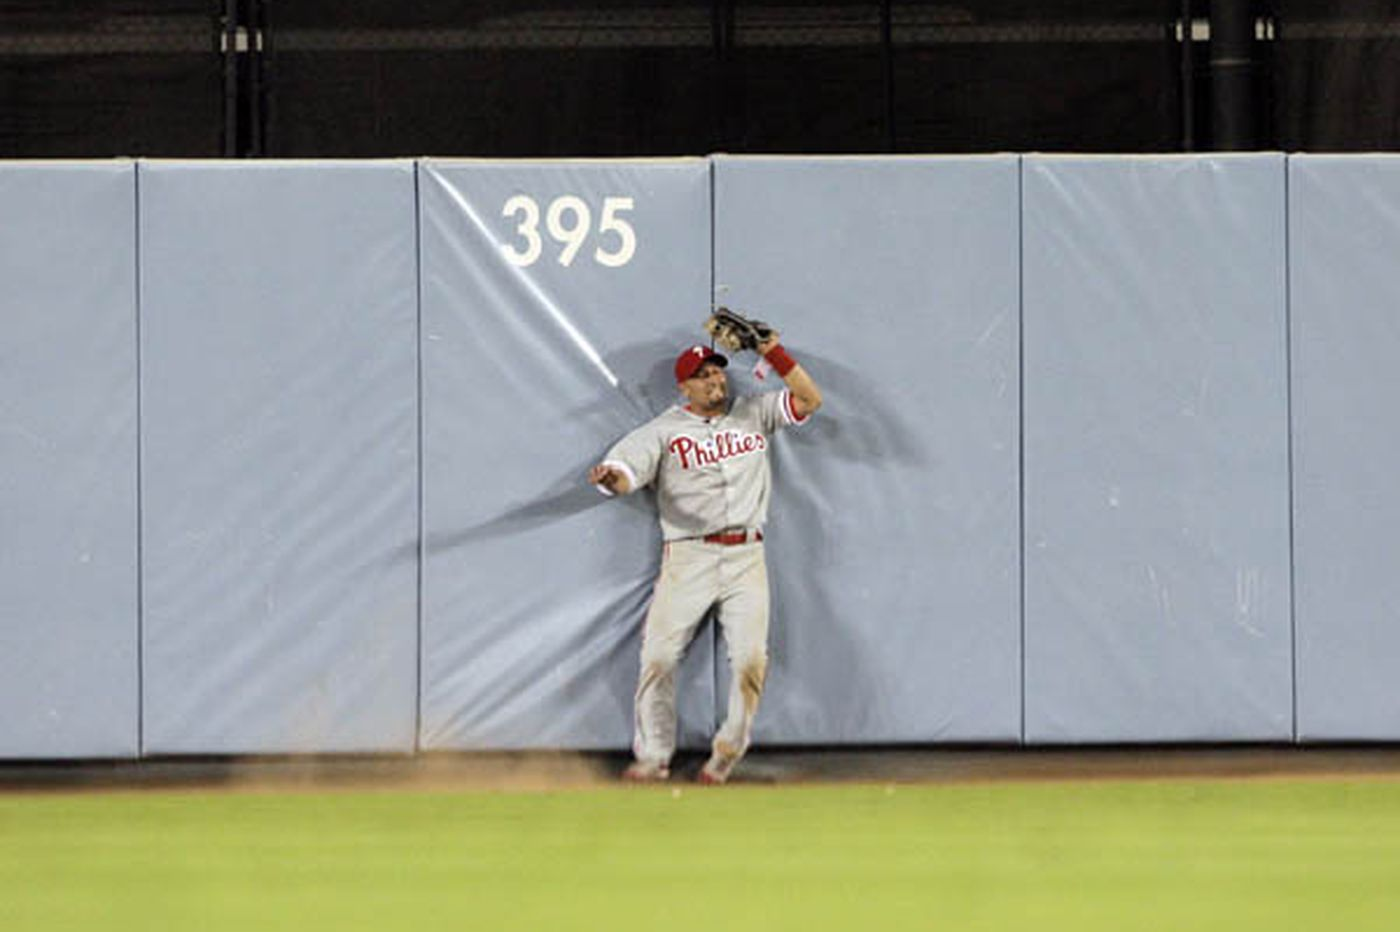 Shane Victorino gives Phillies' Odubel Herrera some advice: 'Bring it. Every day. Every game. Every pitch.'